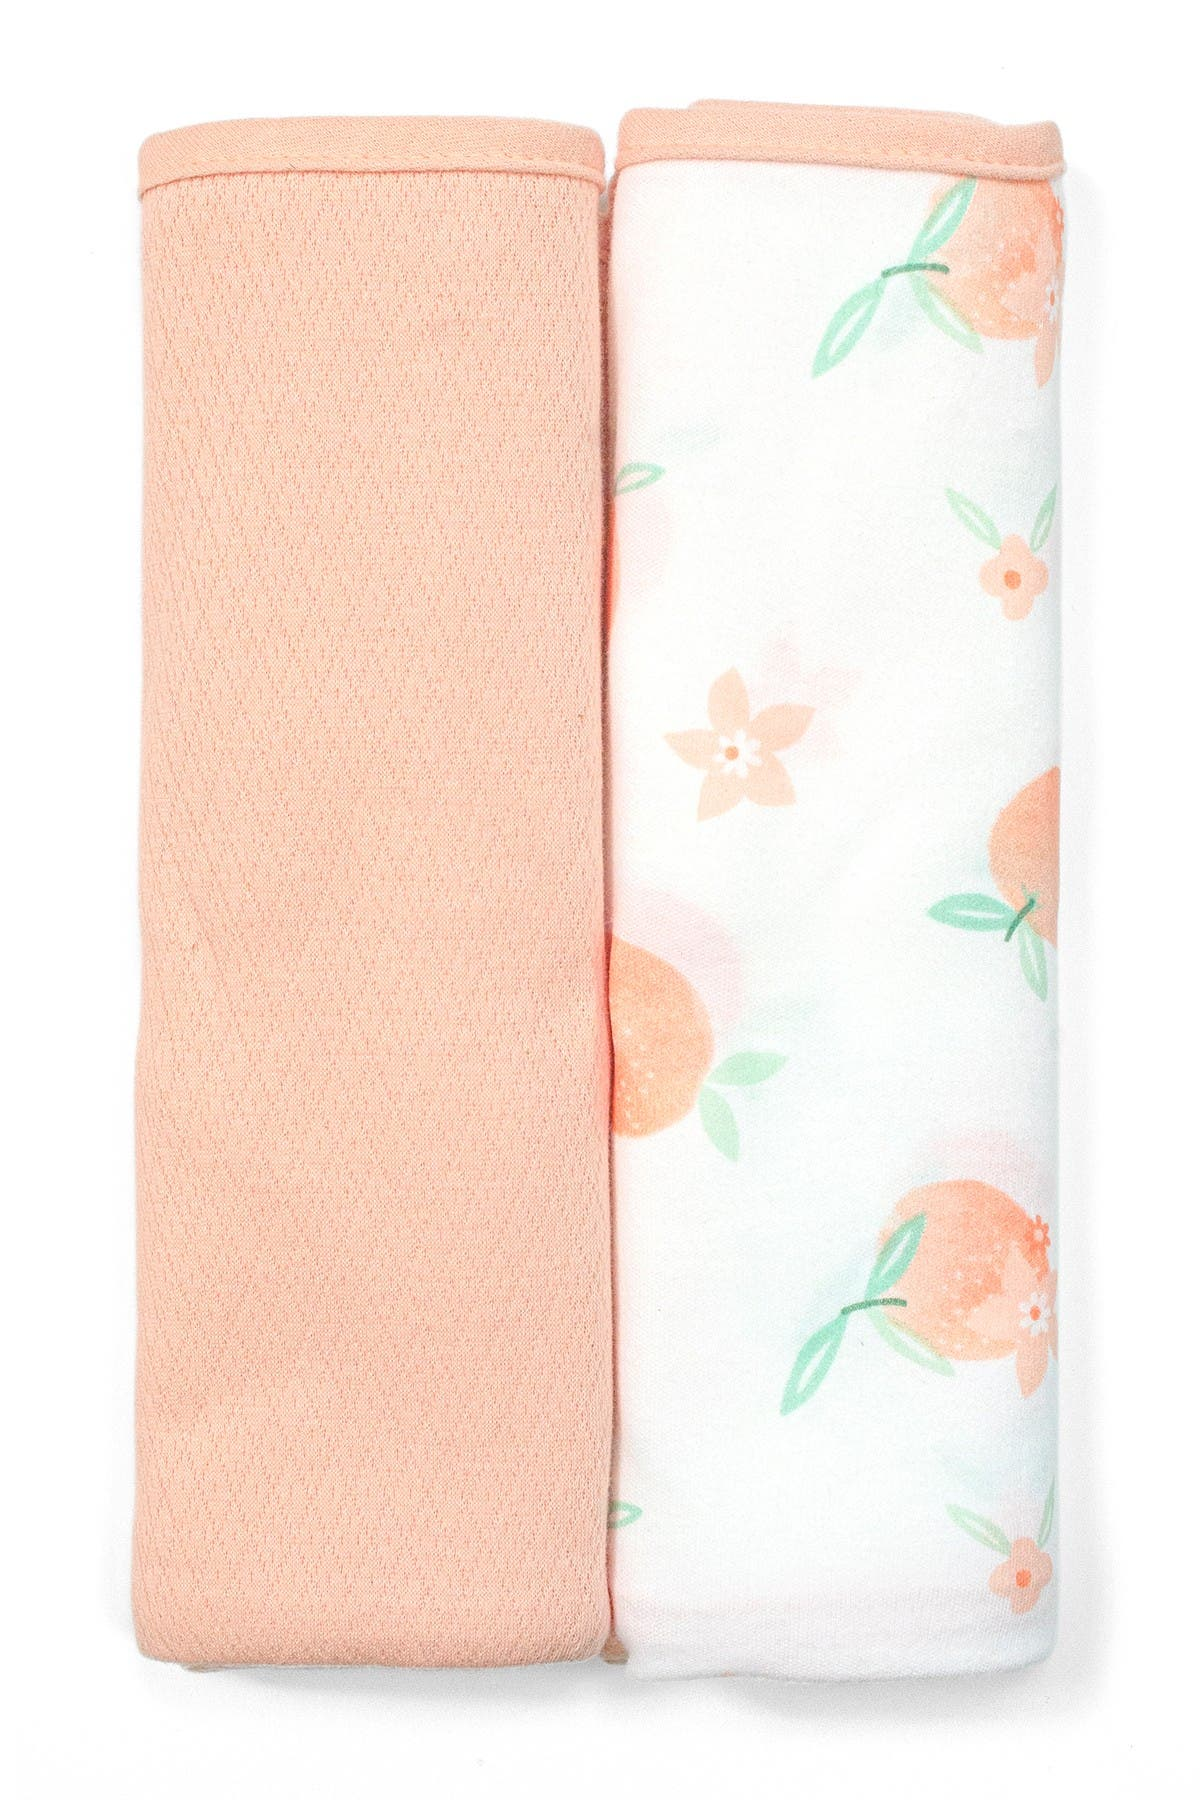 Image of RABBIT AND BEAR ORGANIC Printed Organic Swaddle Blanket - Pack of 2